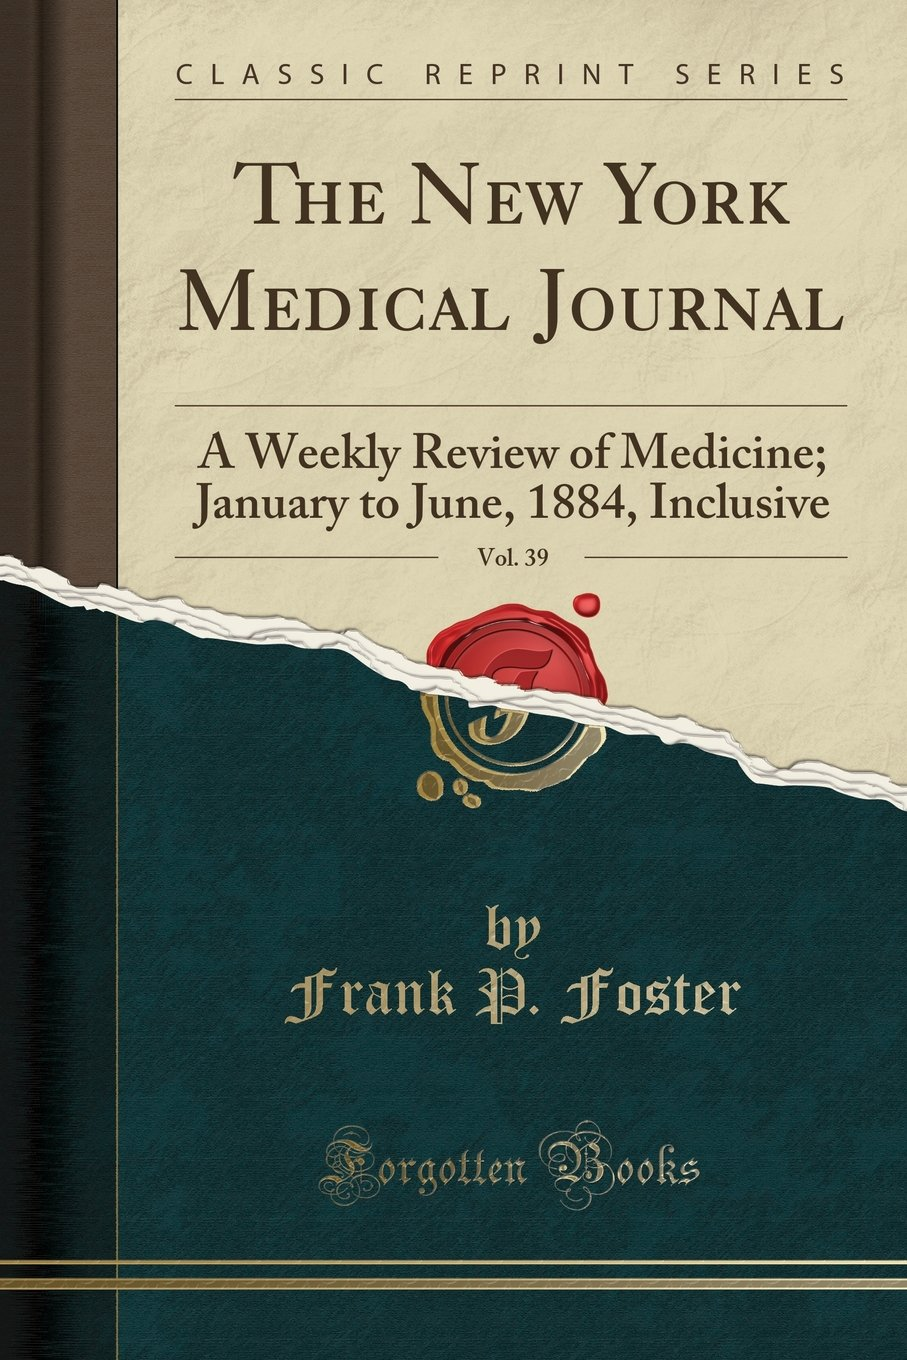 The New York Medical Journal, Vol. 39: A Weekly Review of Medicine; January to June, 1884, Inclusive (Classic Reprint) pdf